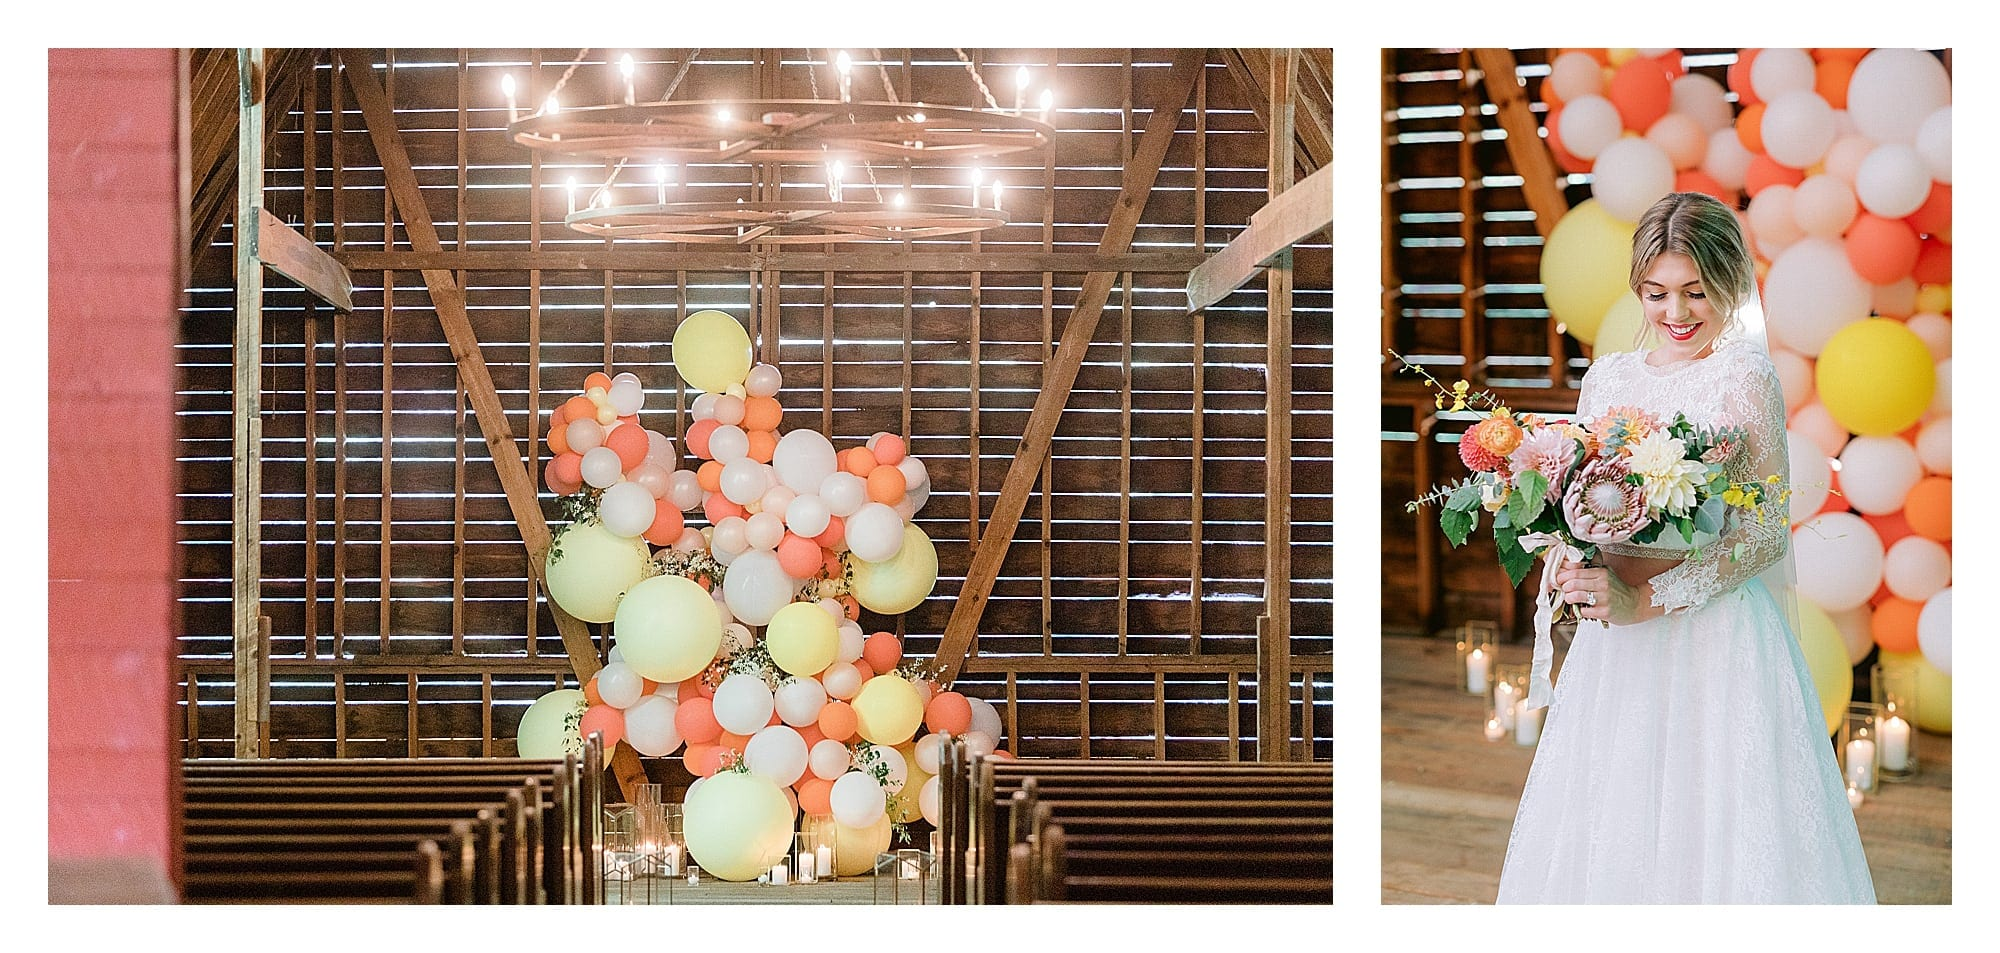 Bride in white two piece lace gown standing in wooden wedding chapel with yellow, orange, peach and white balloon backdrop with candles